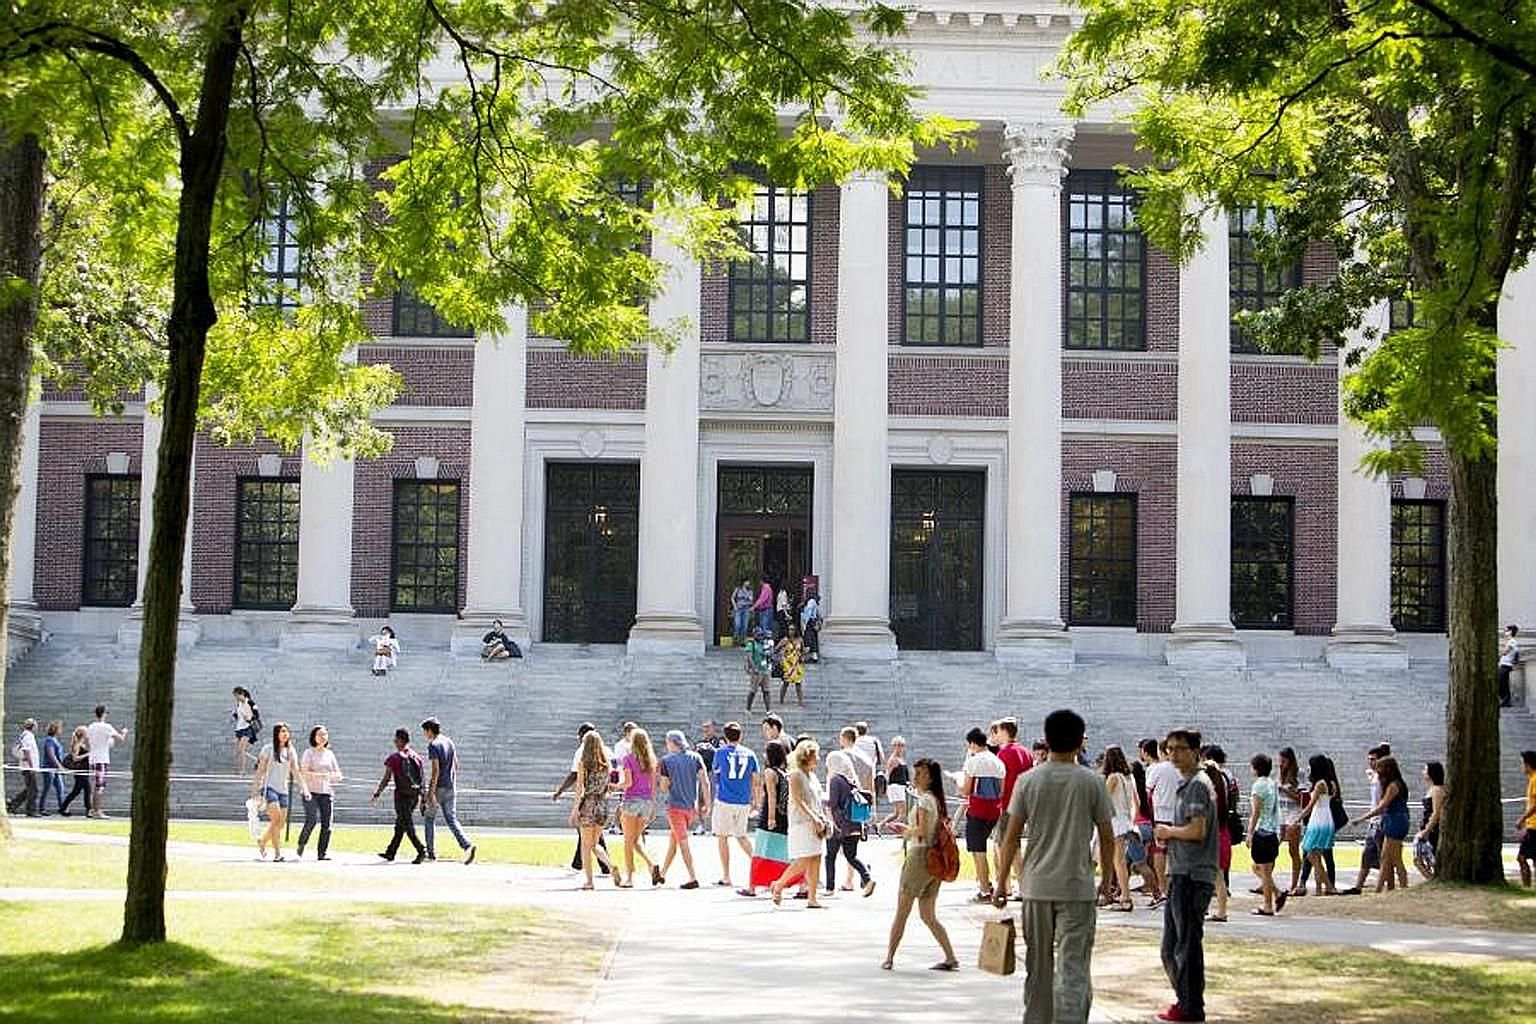 A lawsuit against Harvard asserts that the university's admissions process amounts to an illegal quota system, in which roughly the same percentage of African-Americans, Hispanics, whites and Asian-Americans have been admitted year after year, despit